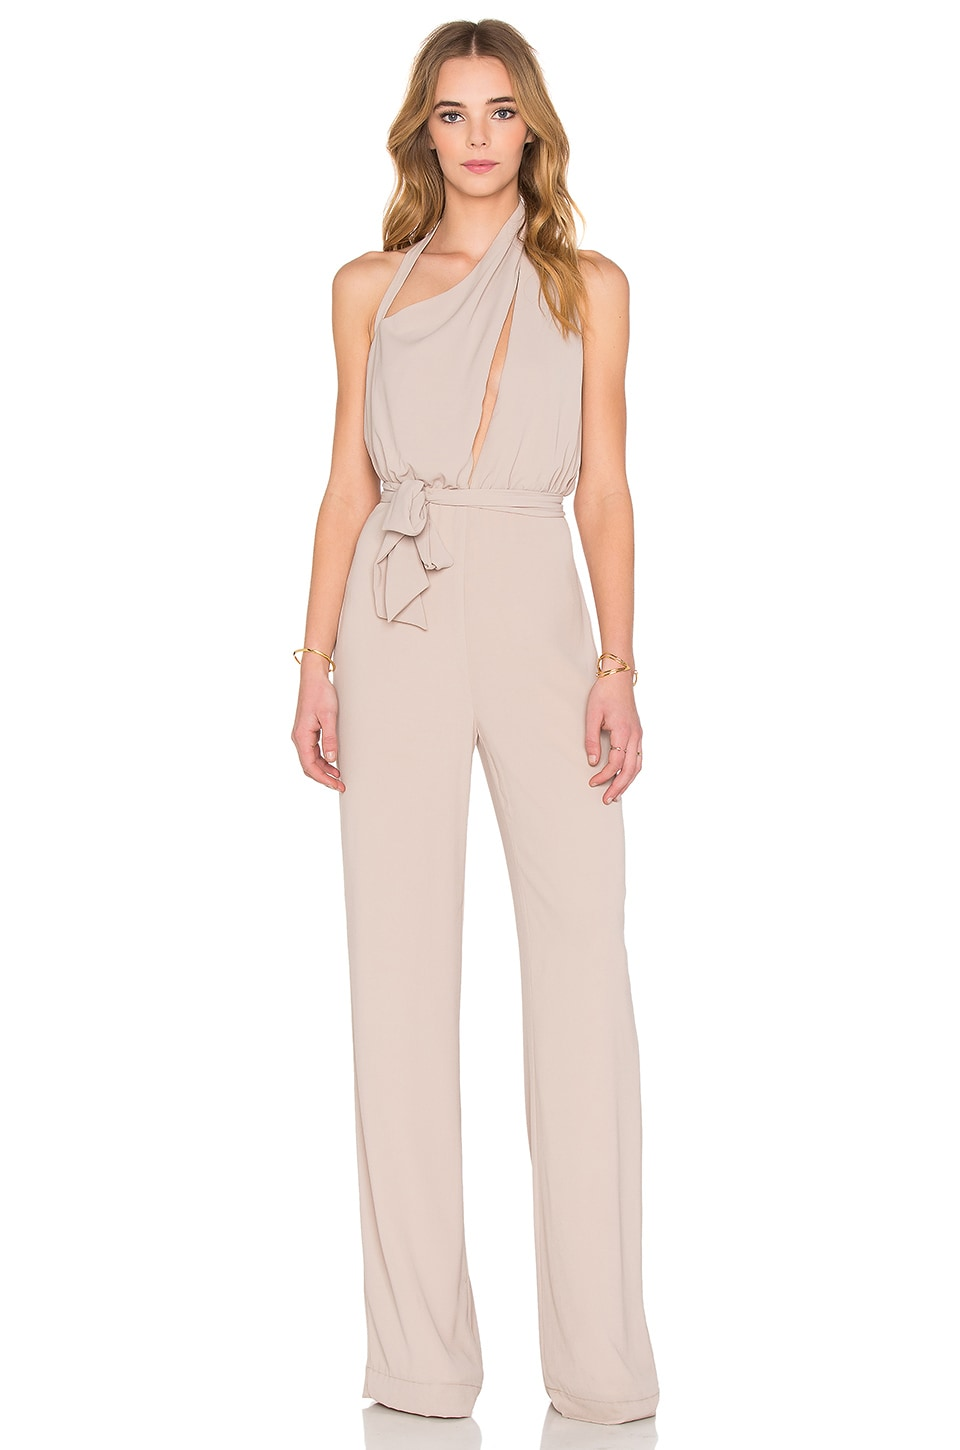 Caprice Pantsuit by Misha Collection